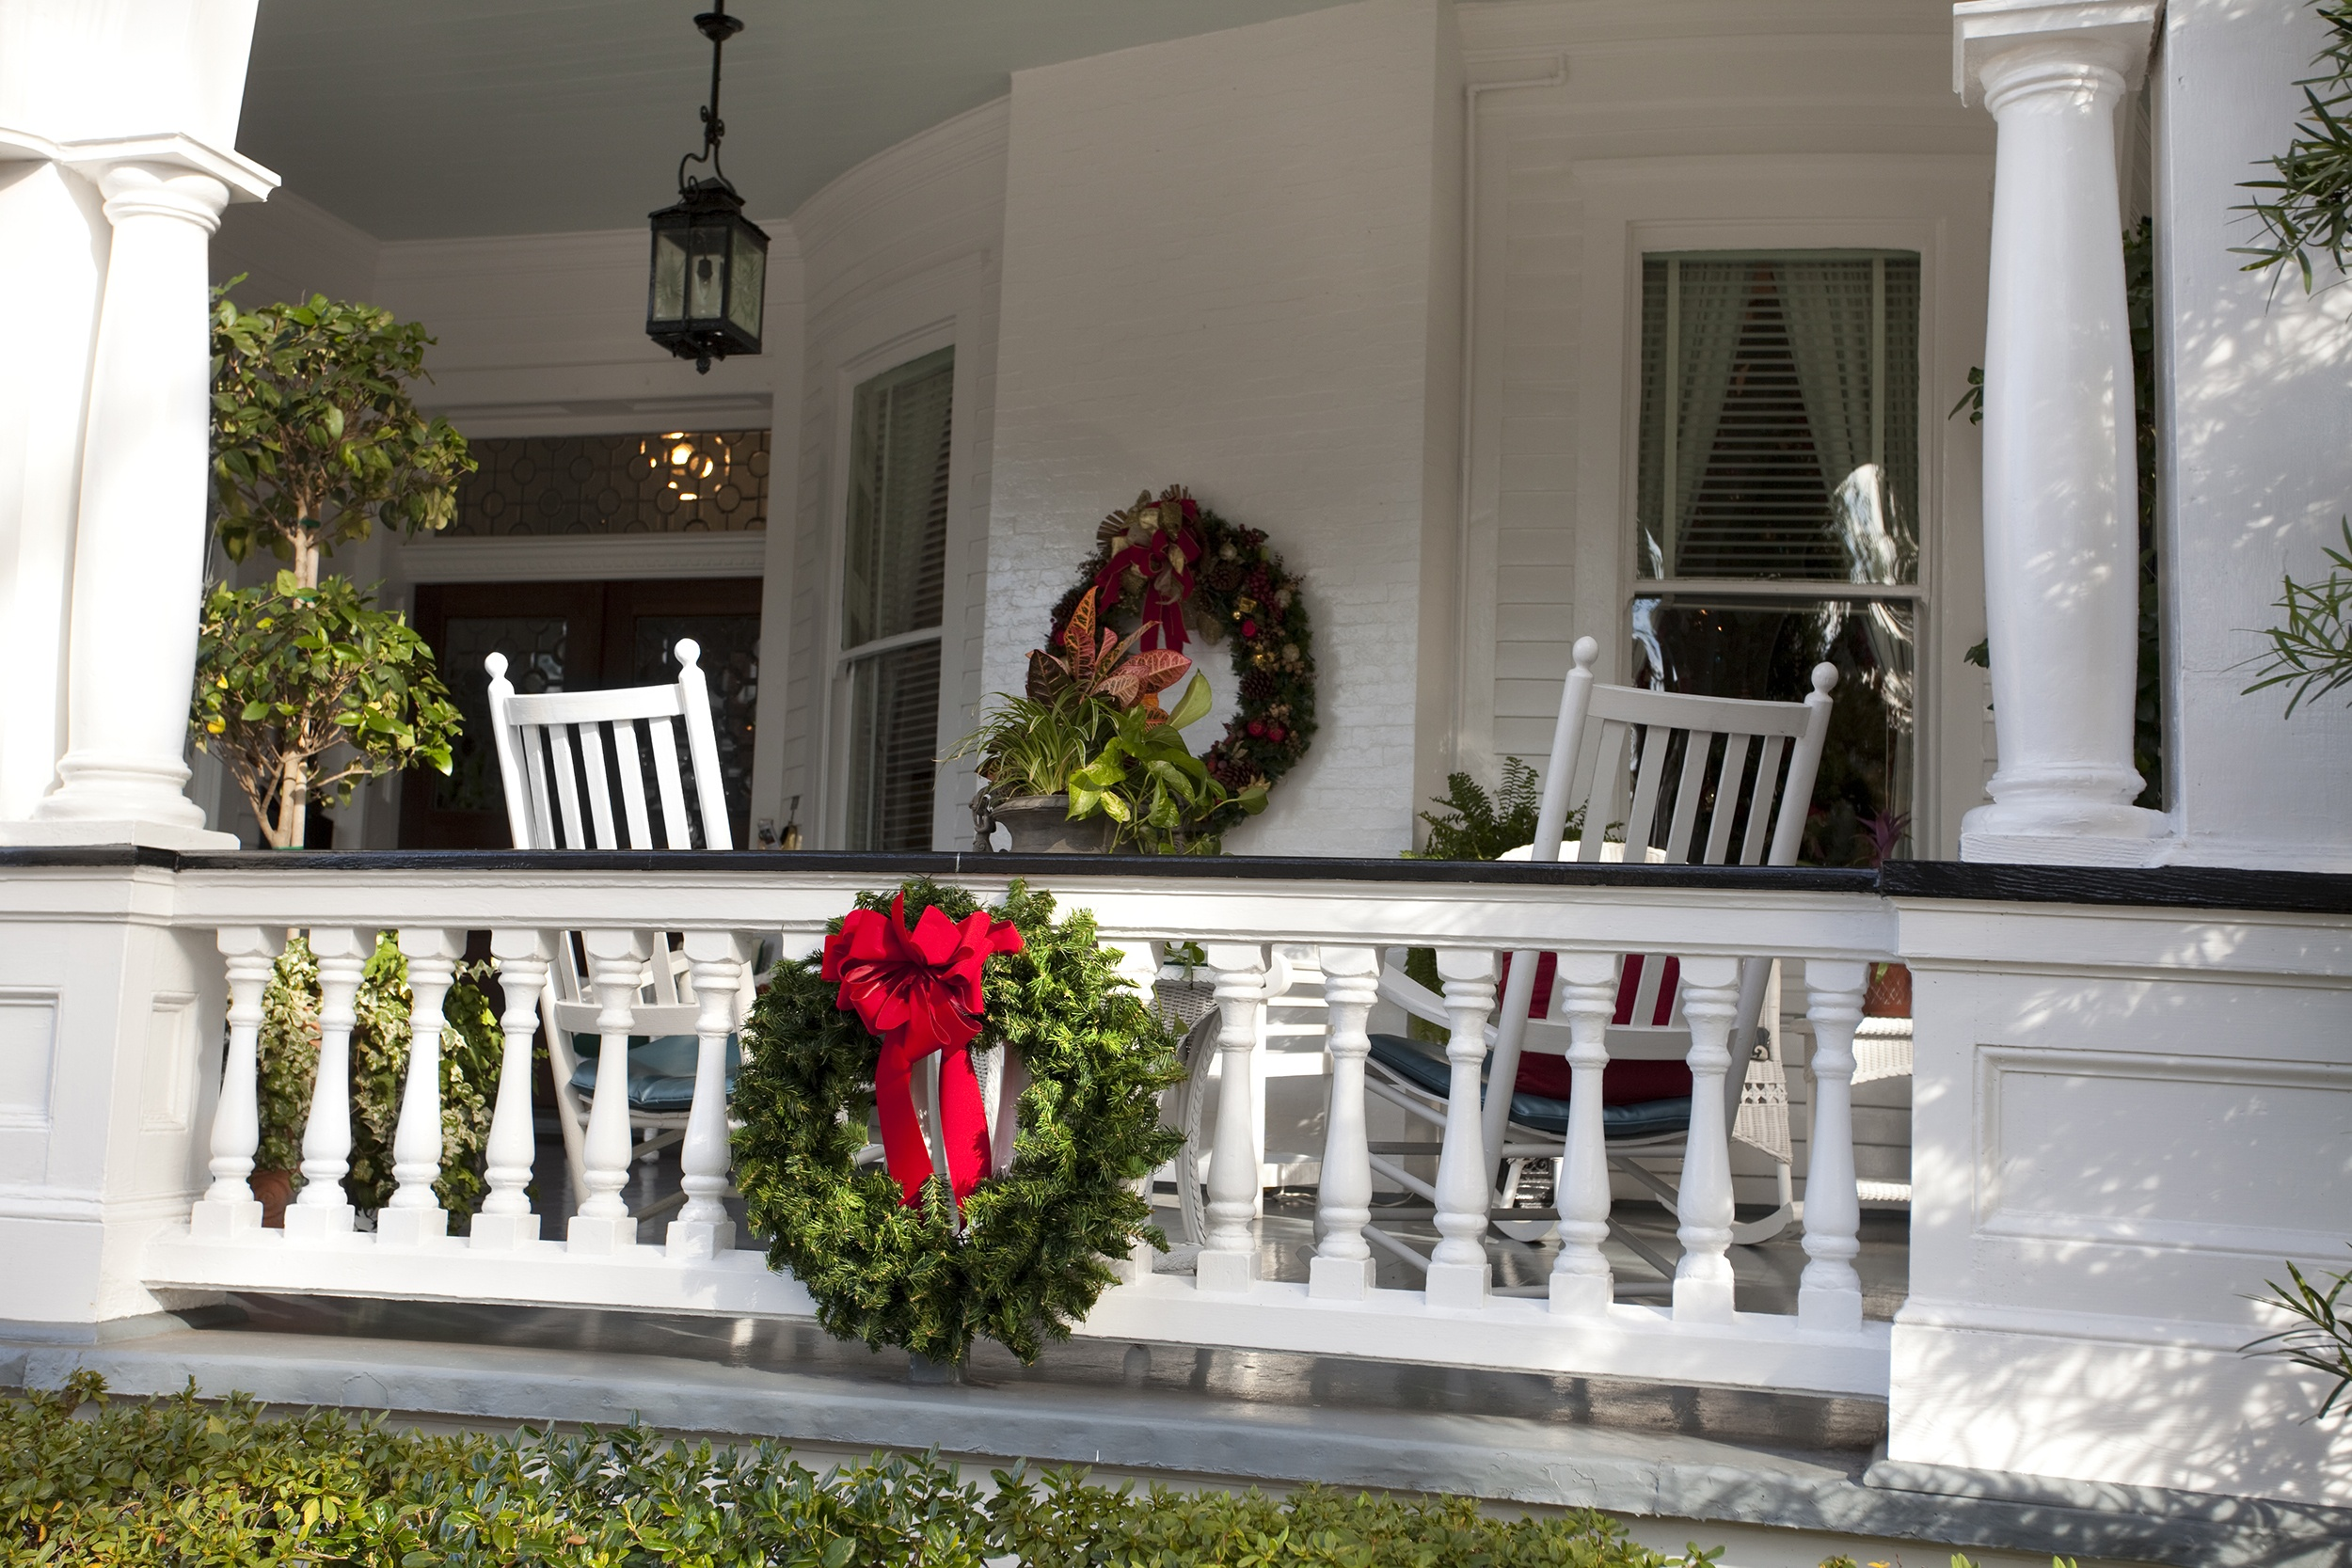 Create a festive Christmas porch with wreaths hanging along railings and down the staircase.